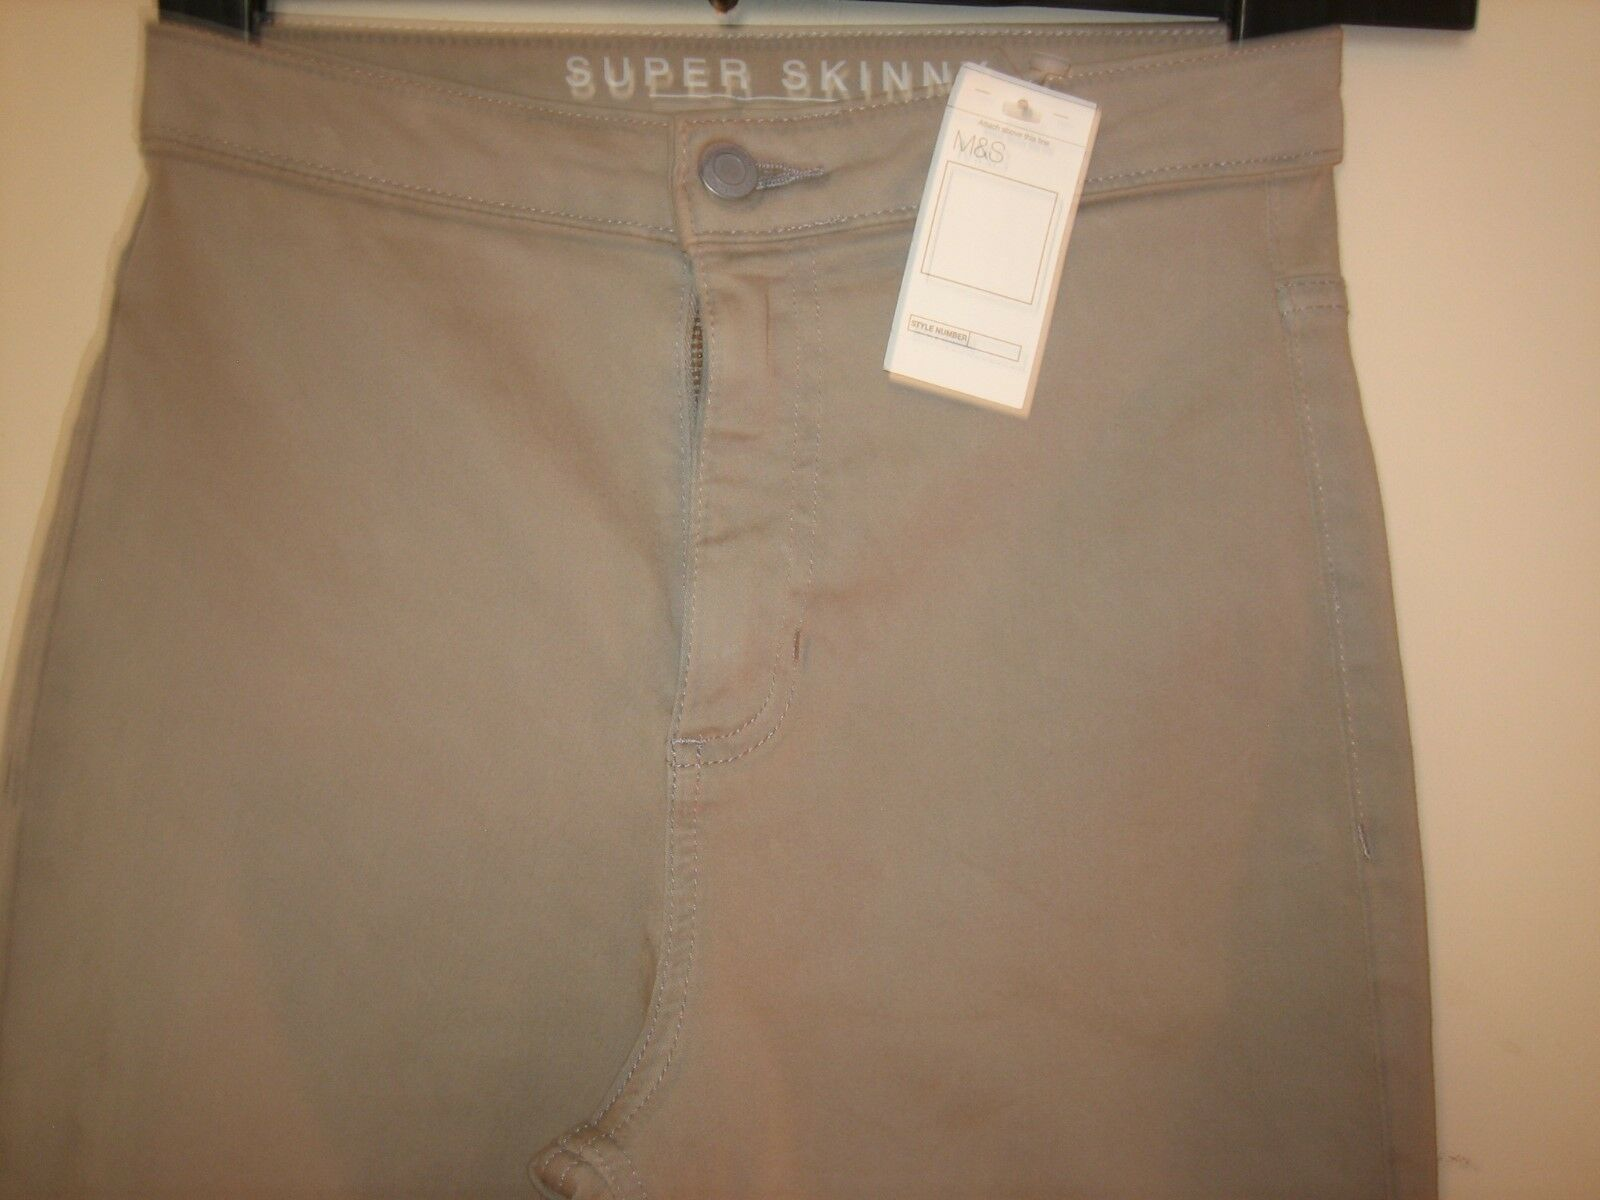 GB11) (NEW & TAGS) WOMEN'S MARKS & SPENCER SUPER SKINNY TROUSERS SIZE 8 LEG 28